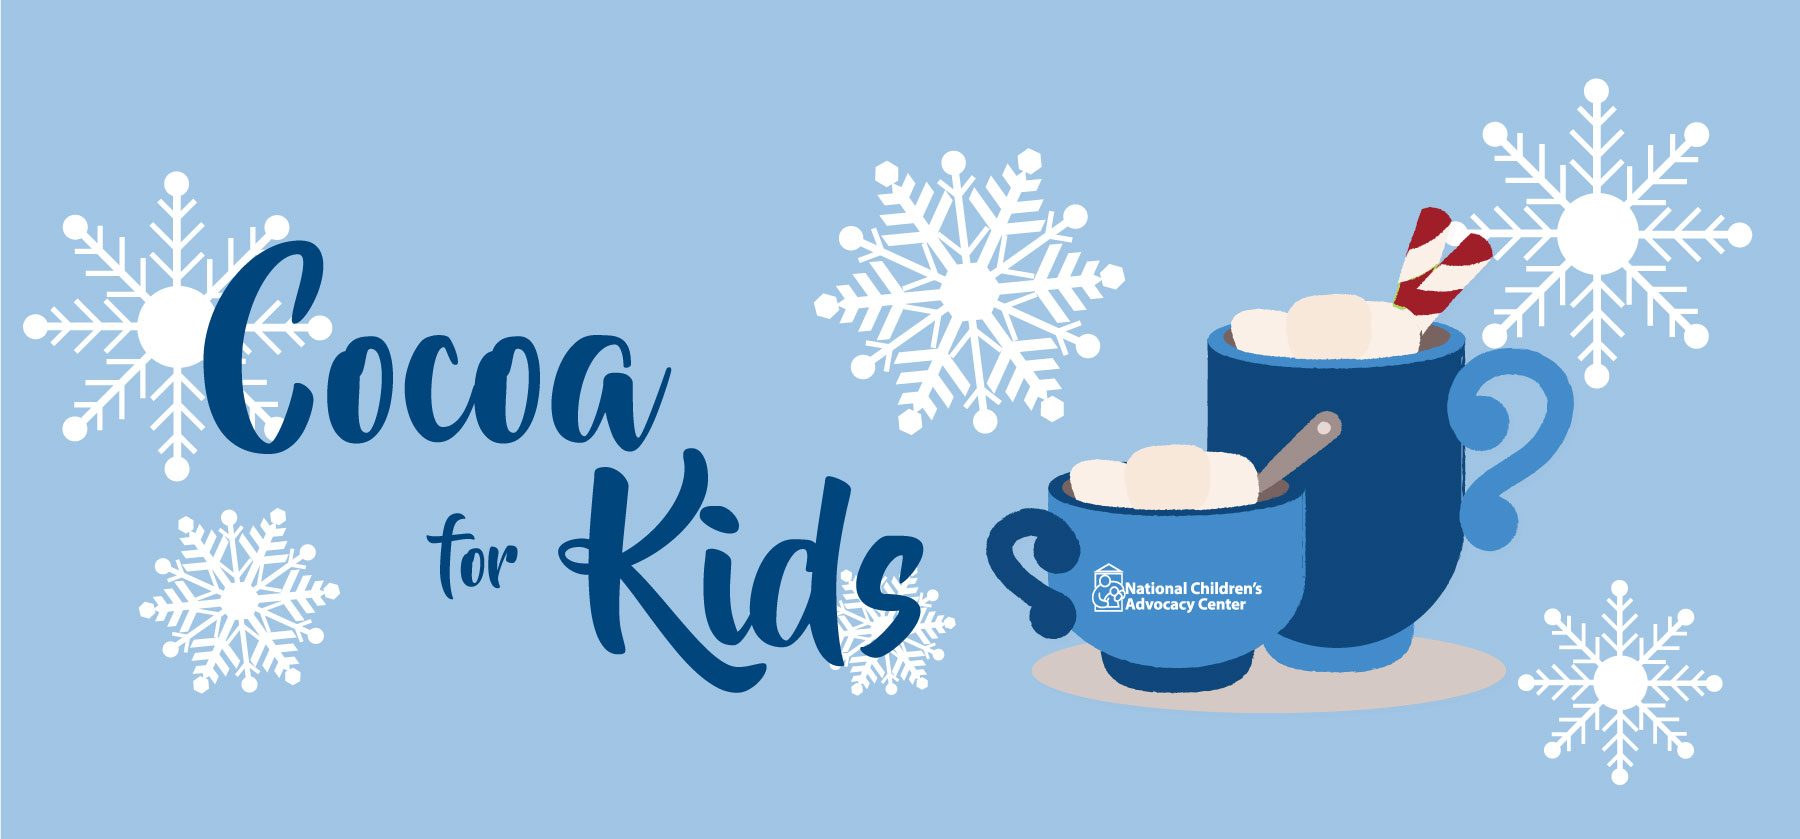 Cocoa-for-Kids-Web-Banner